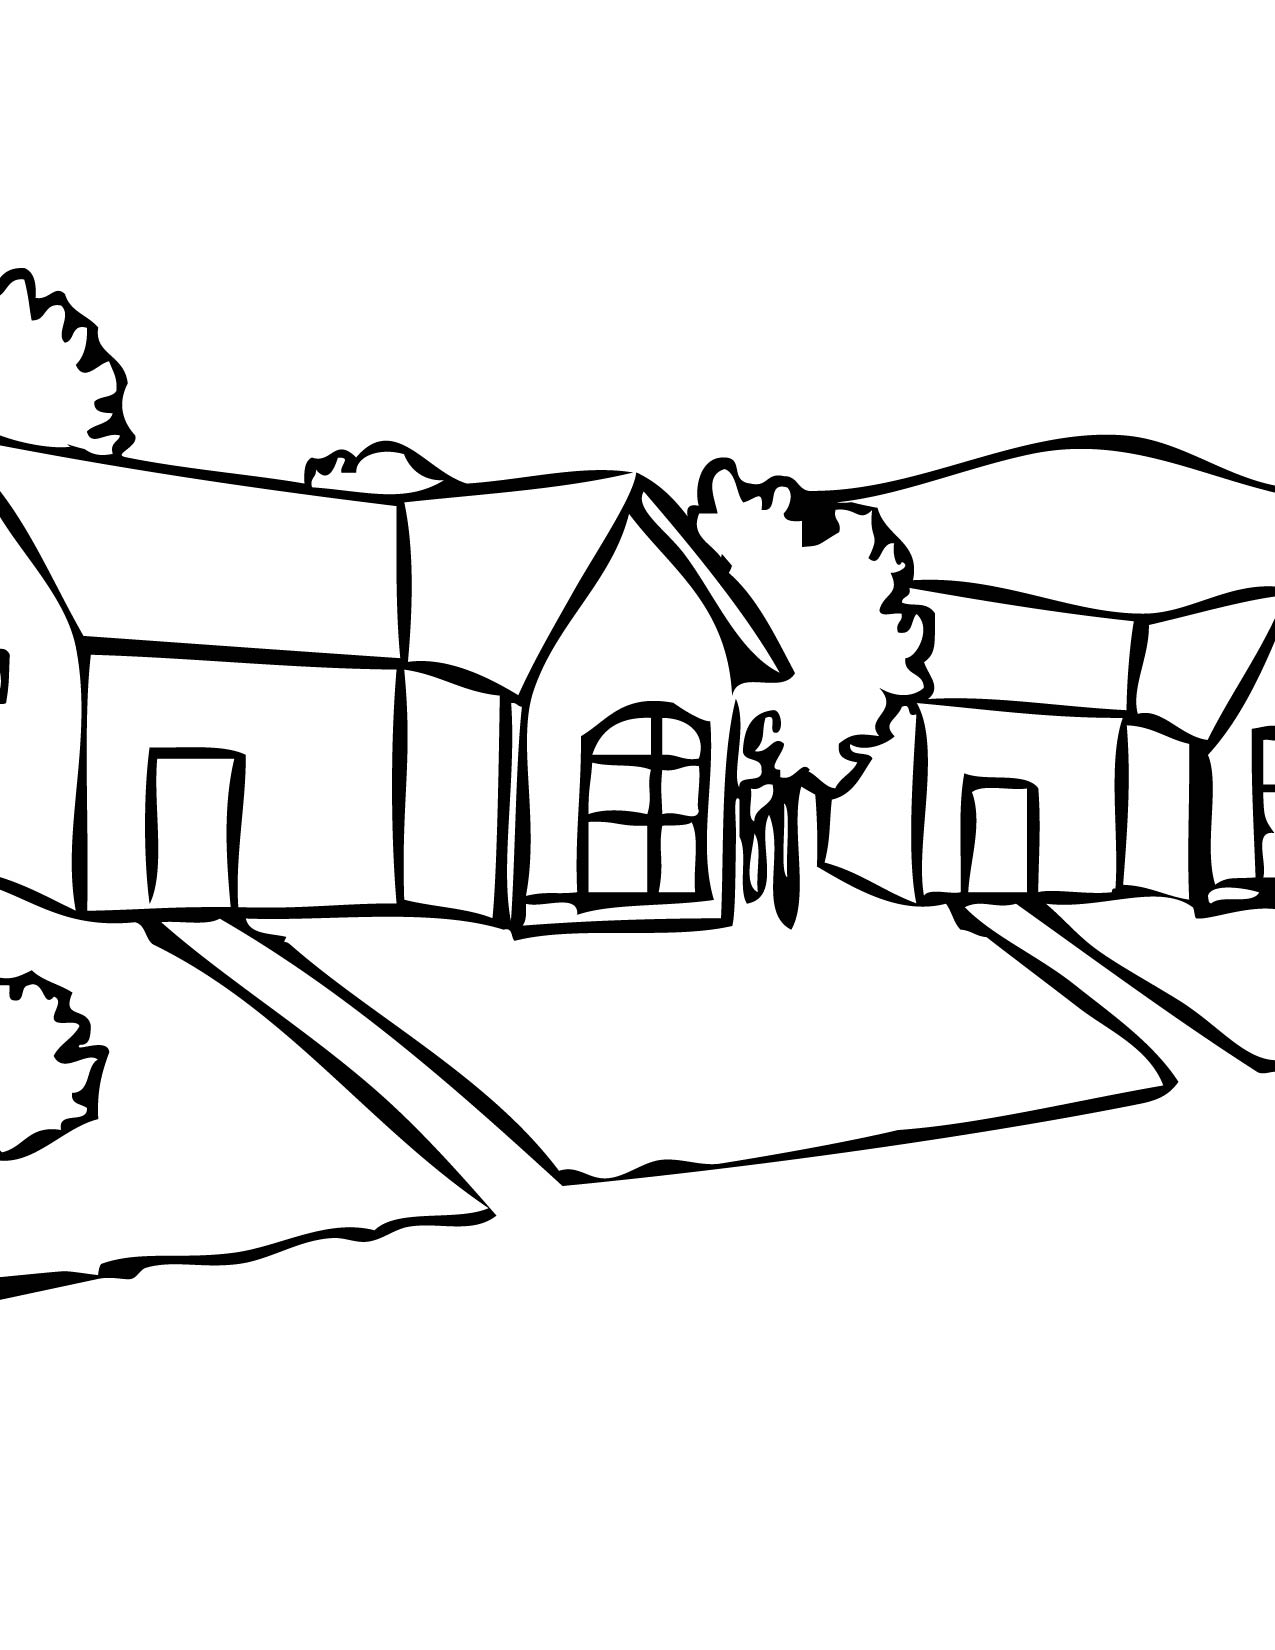 Neighborhood Coloring Pages Printable Pictures To Pin